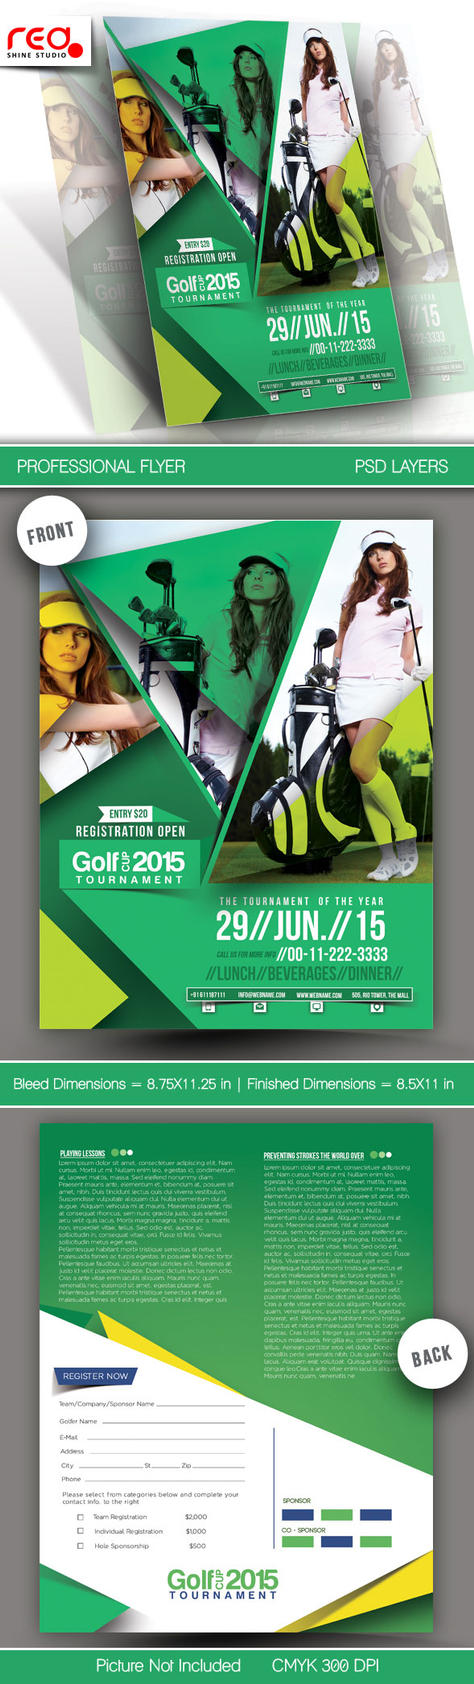 Golf Cup Tournament Flyer Template - 2 by Redshinestudio